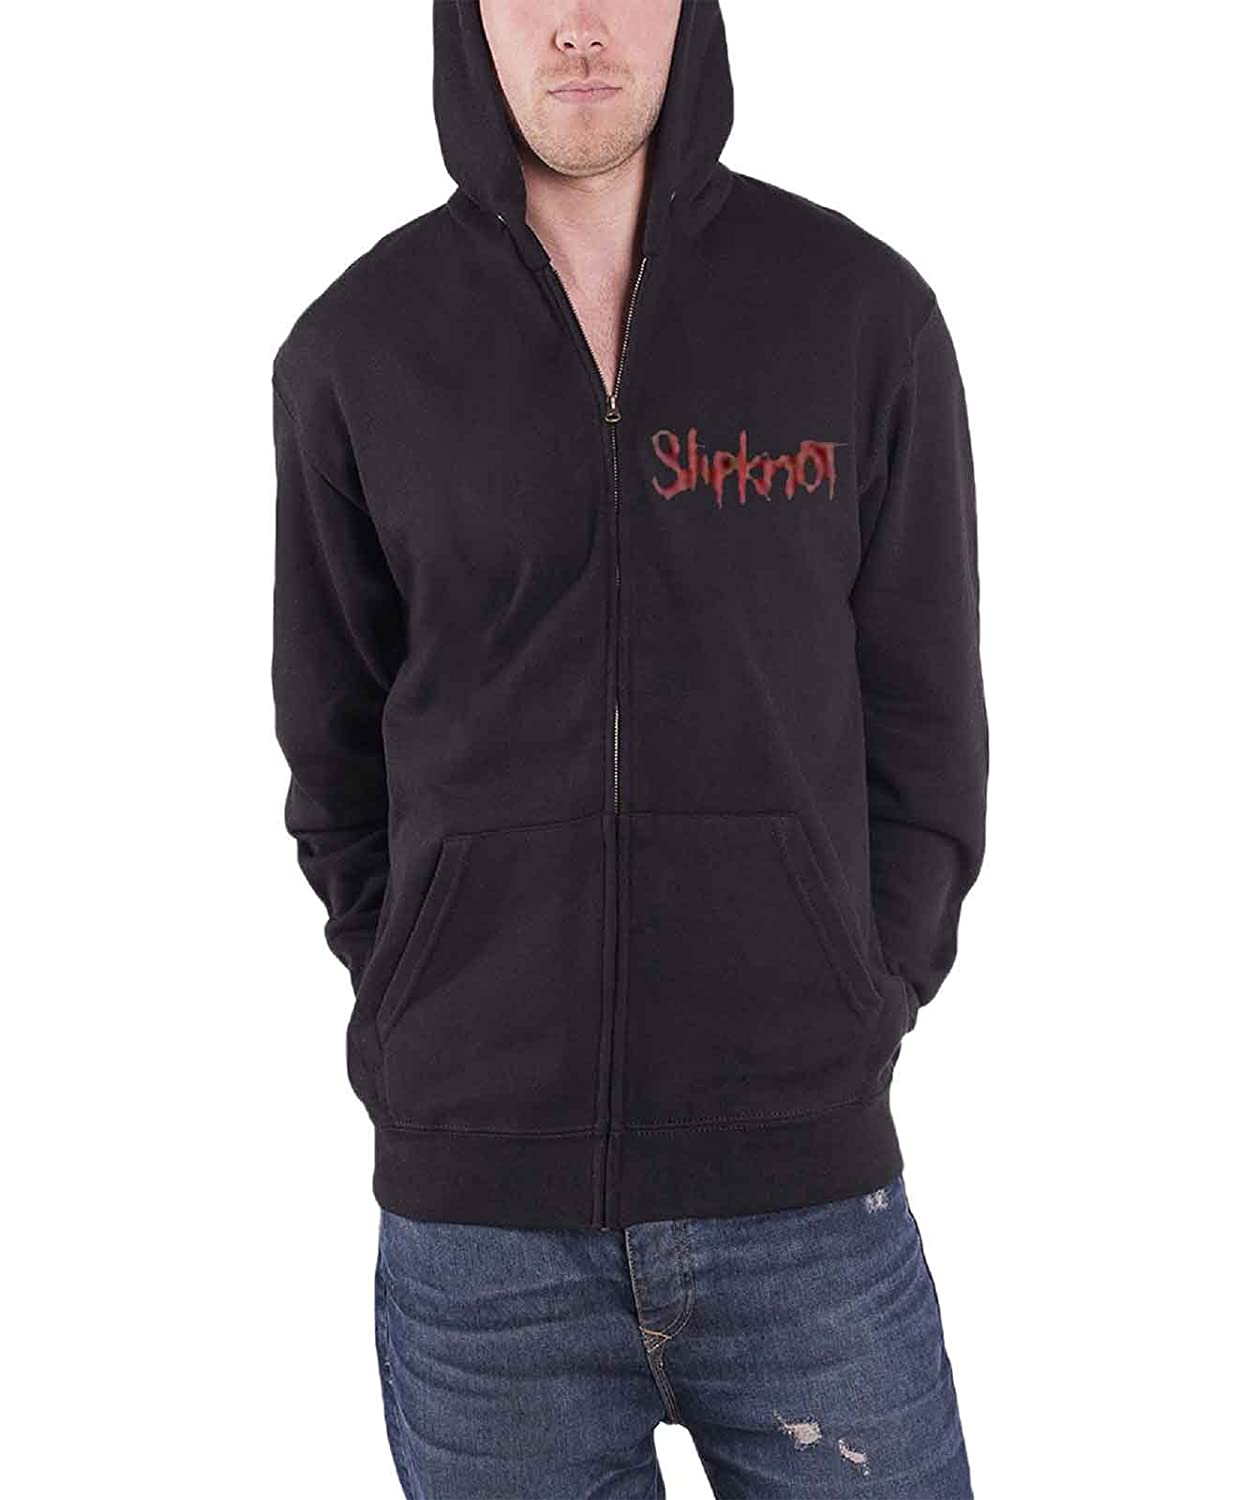 Slipknot Kapuzenpullover Skull Teeth band Herren Nue Schwarz Zipped